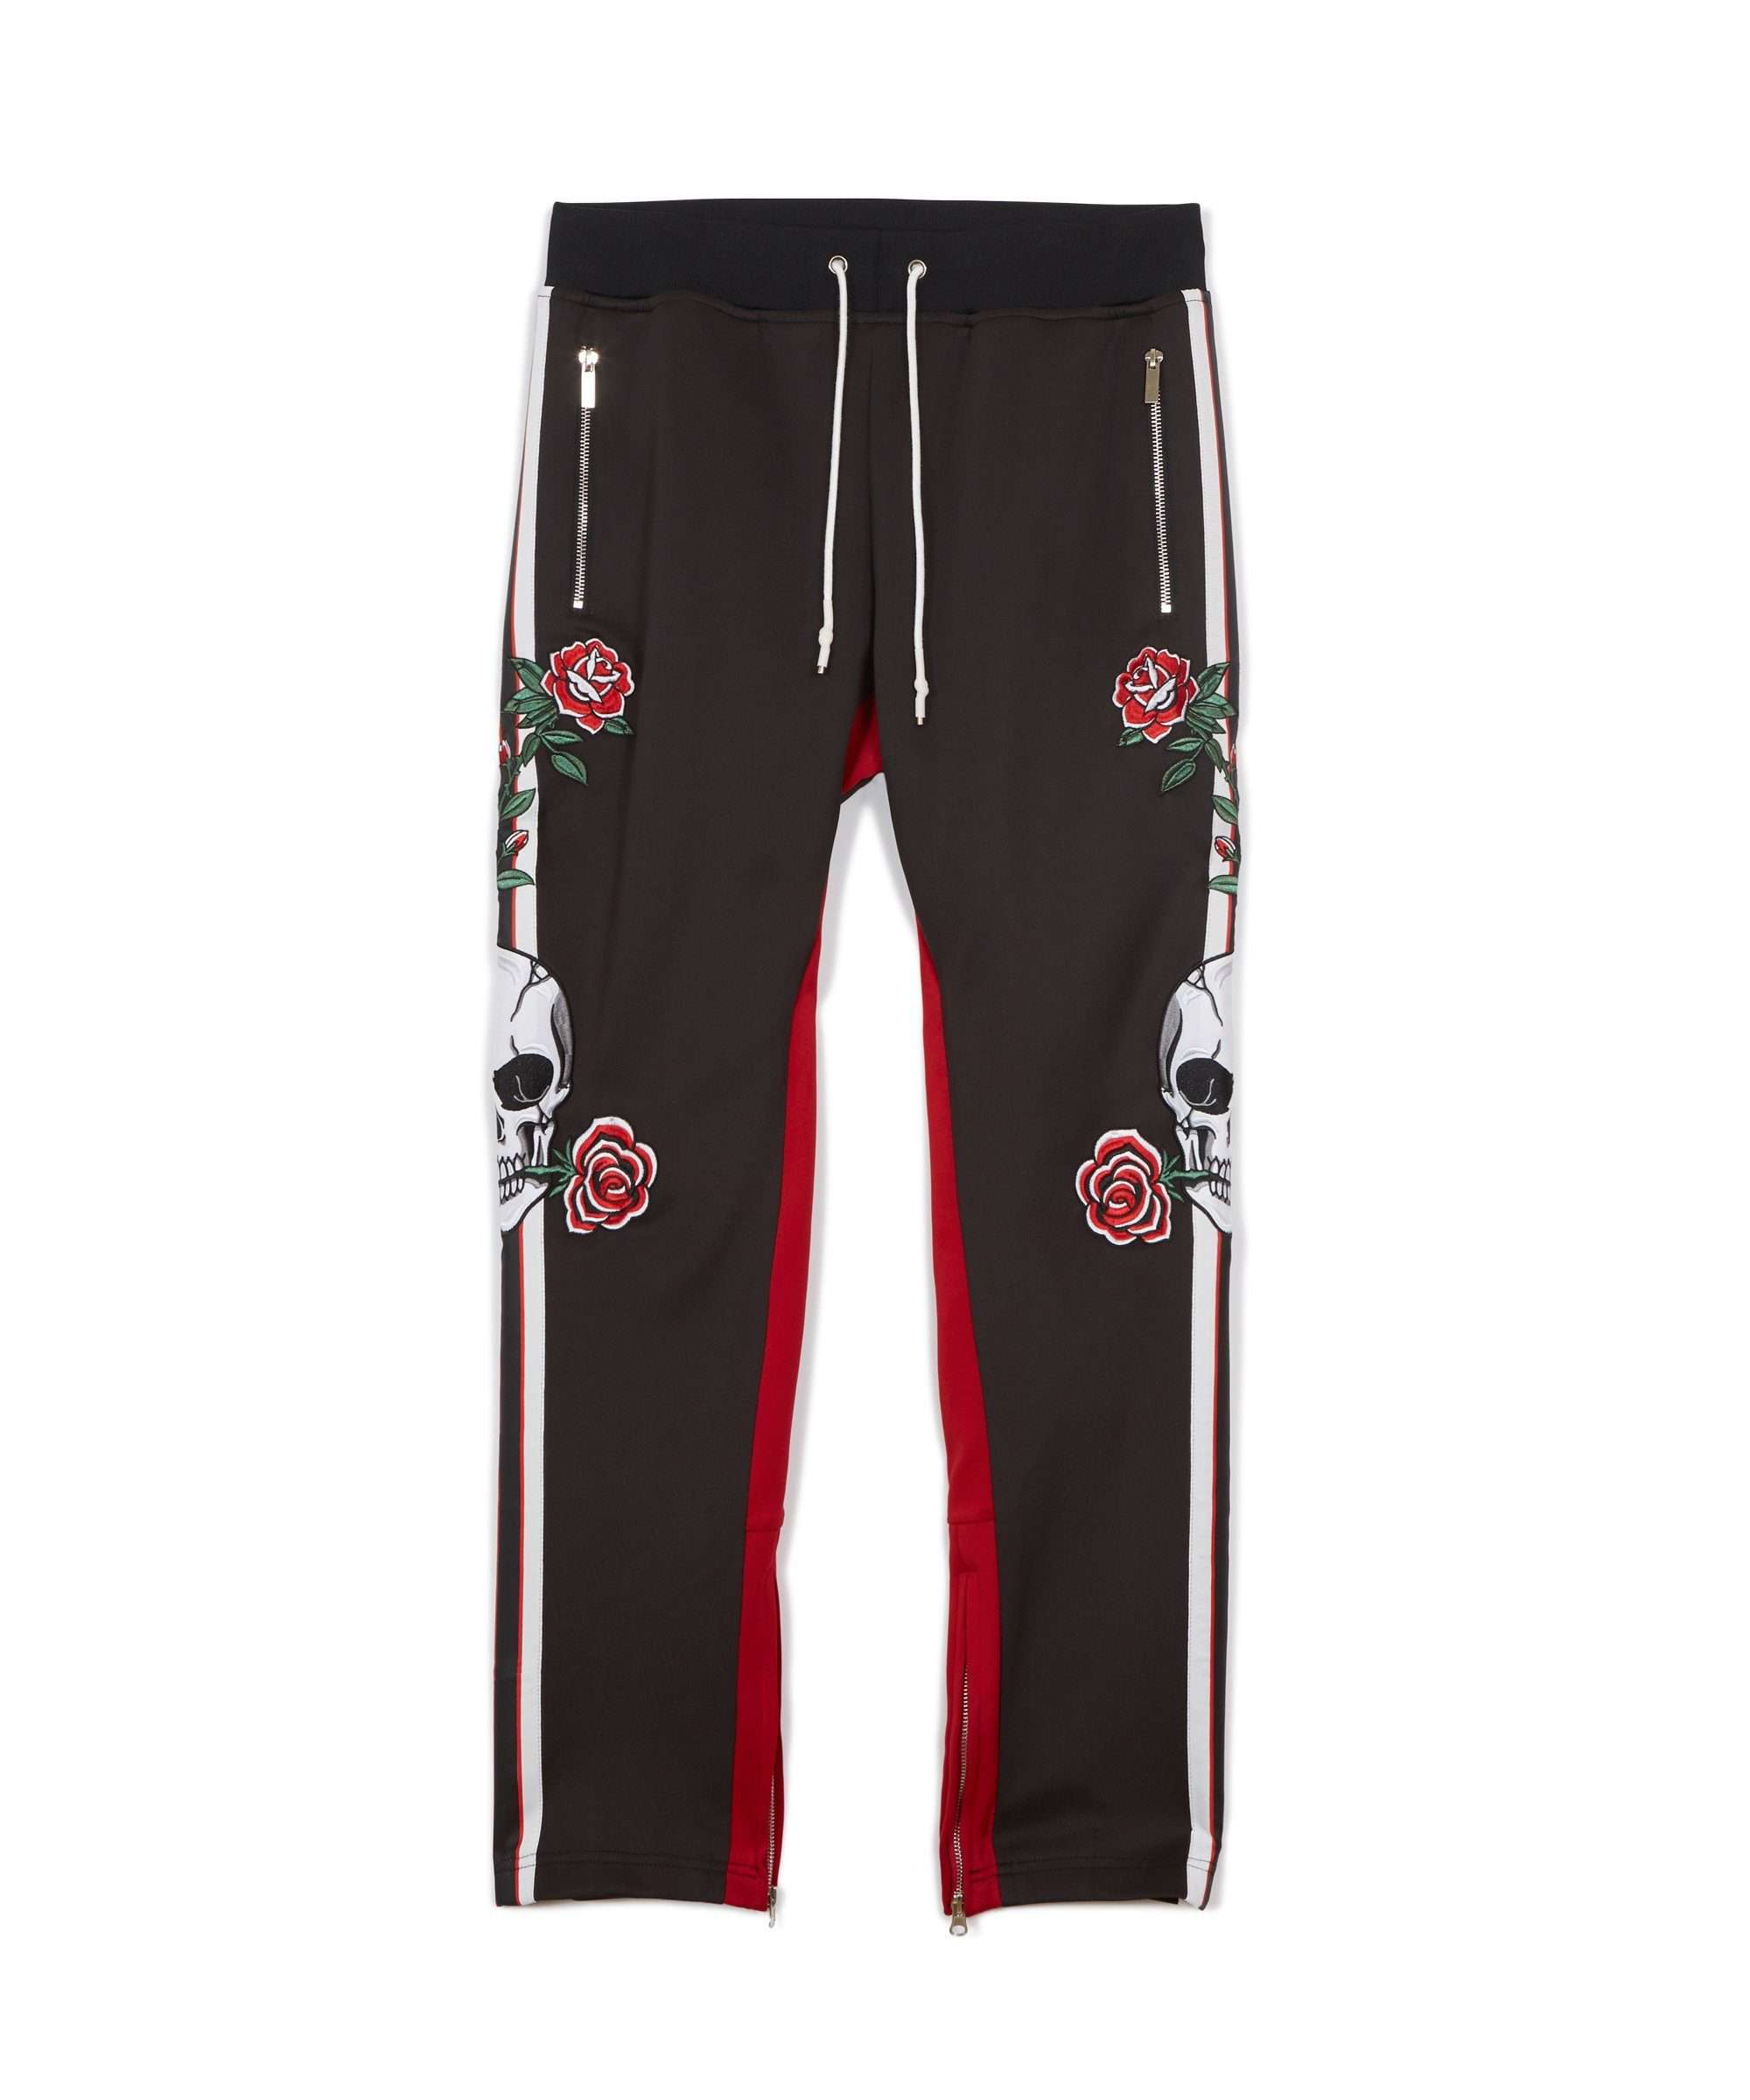 Panther Track Pants - Reason Clothing